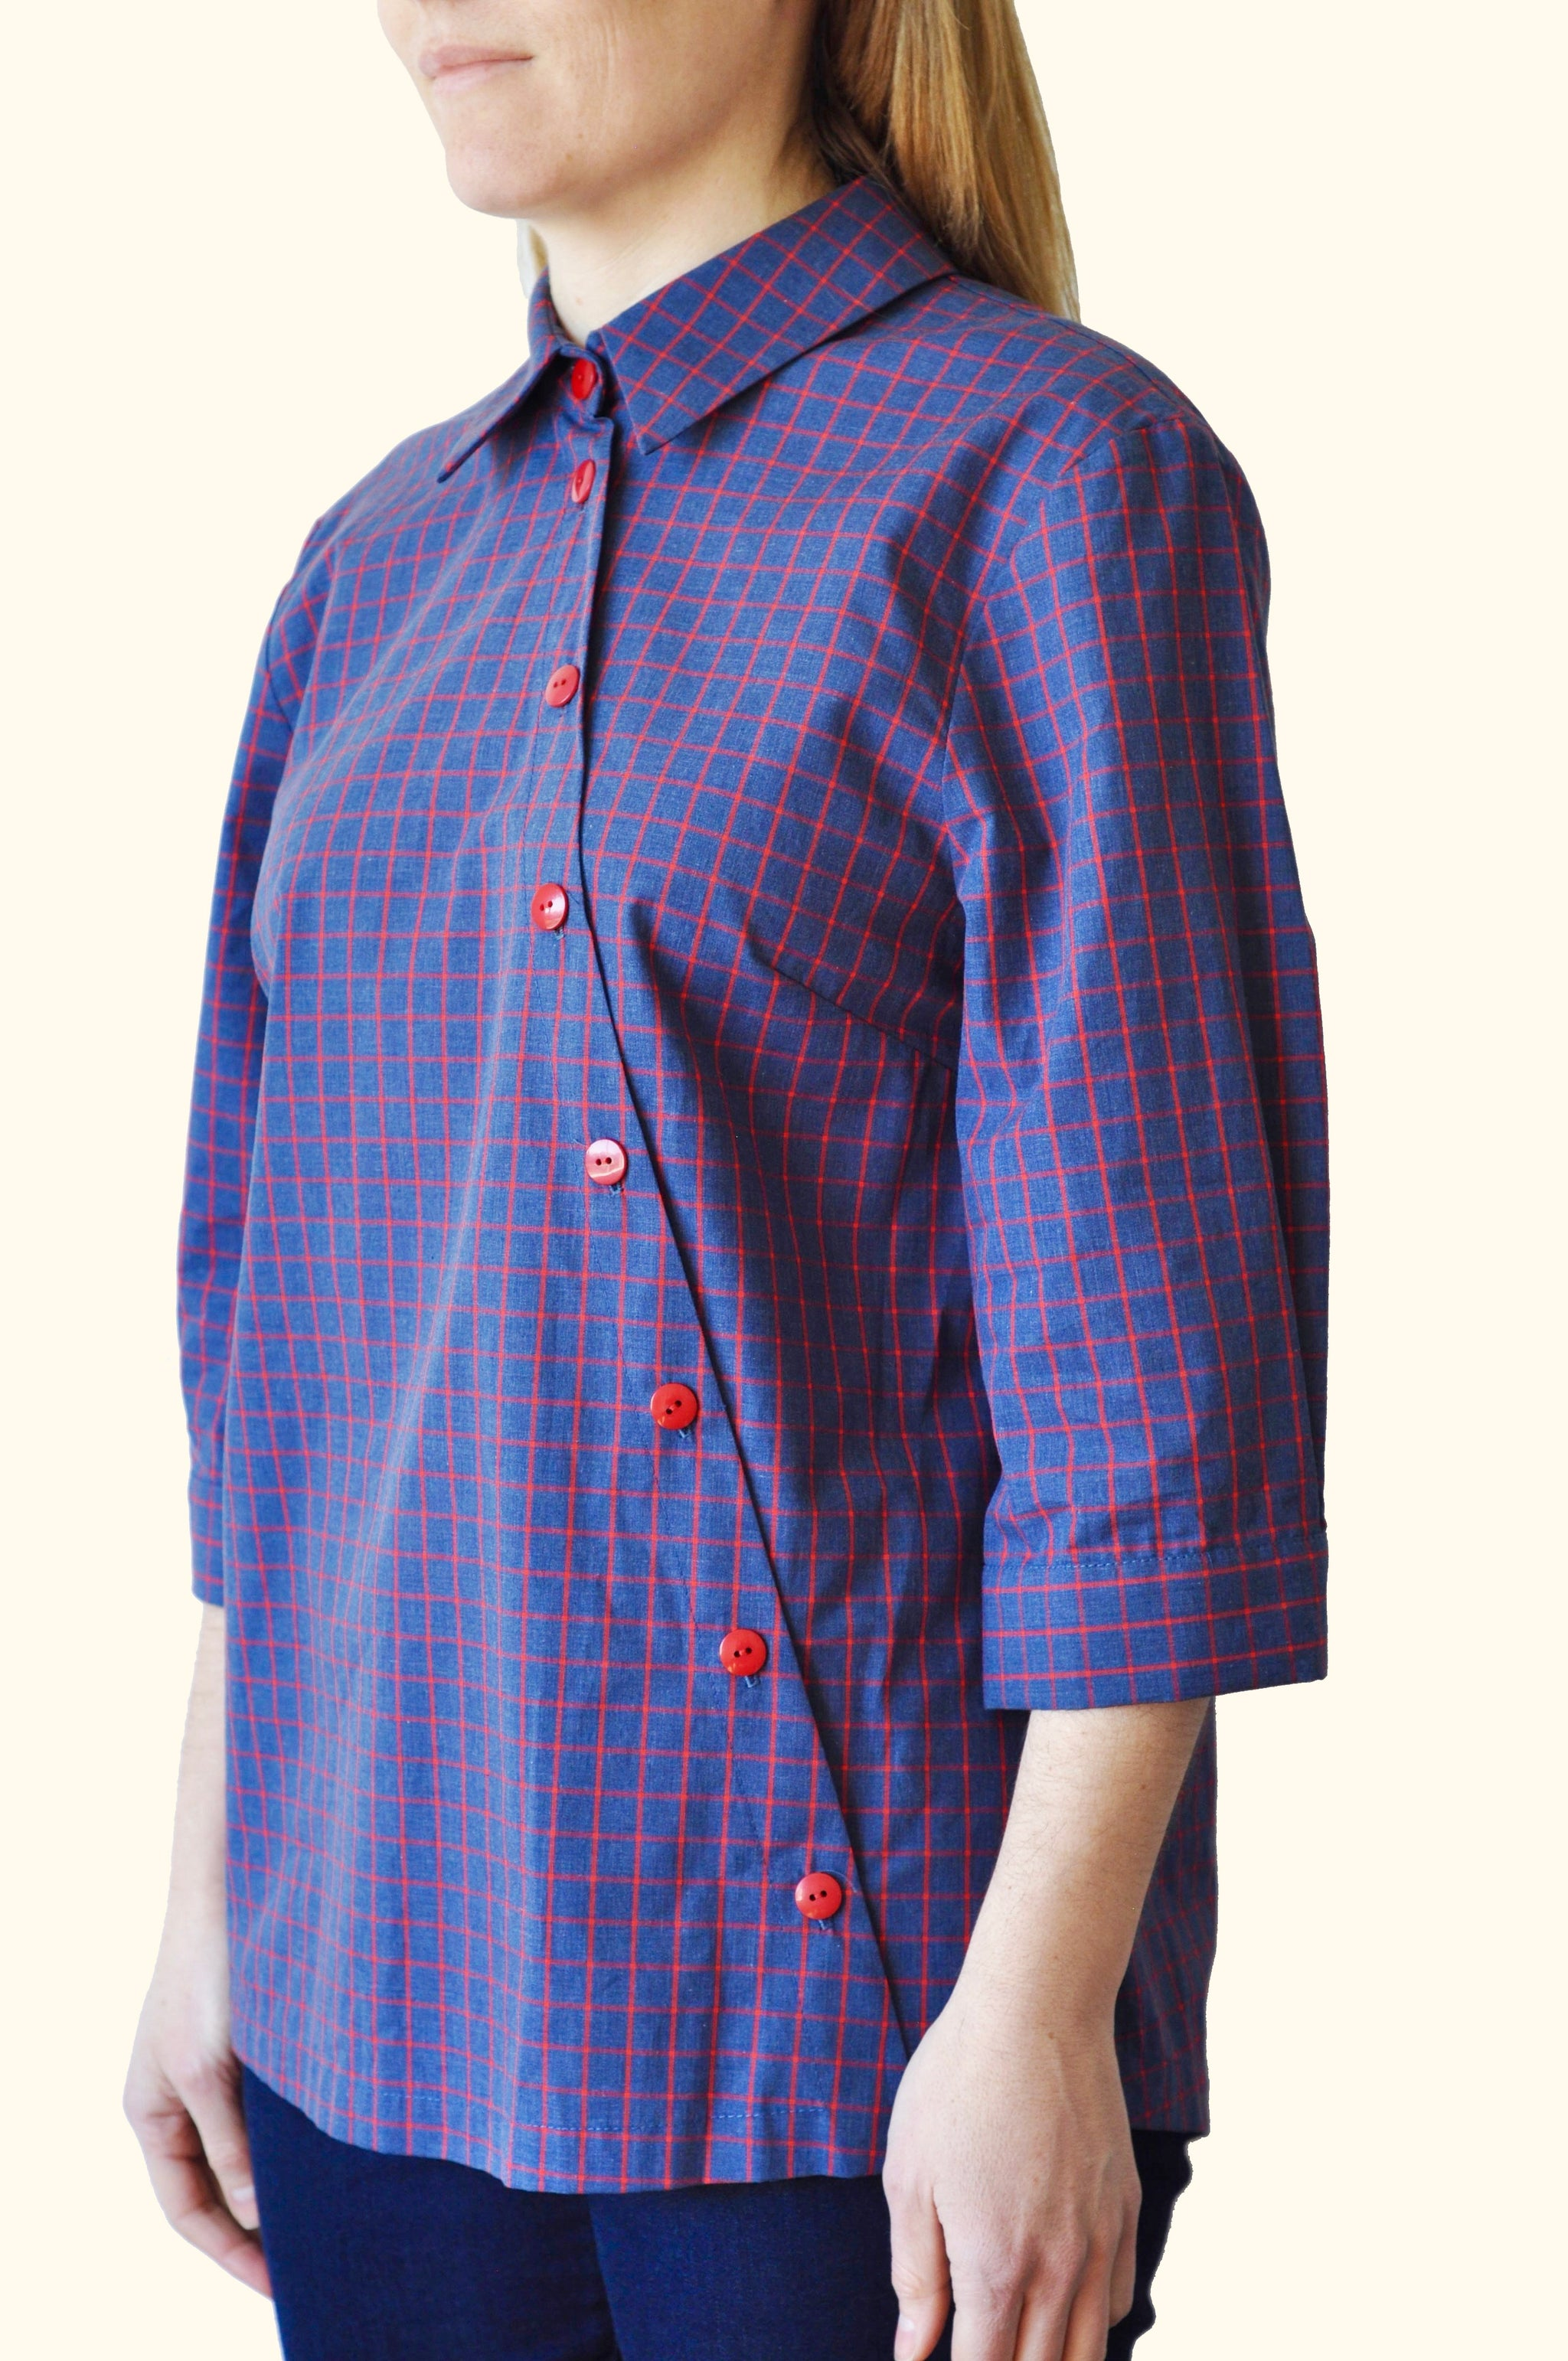 SATELLITE SHIRT CHARCOAL CHECK (ONE ONLY)